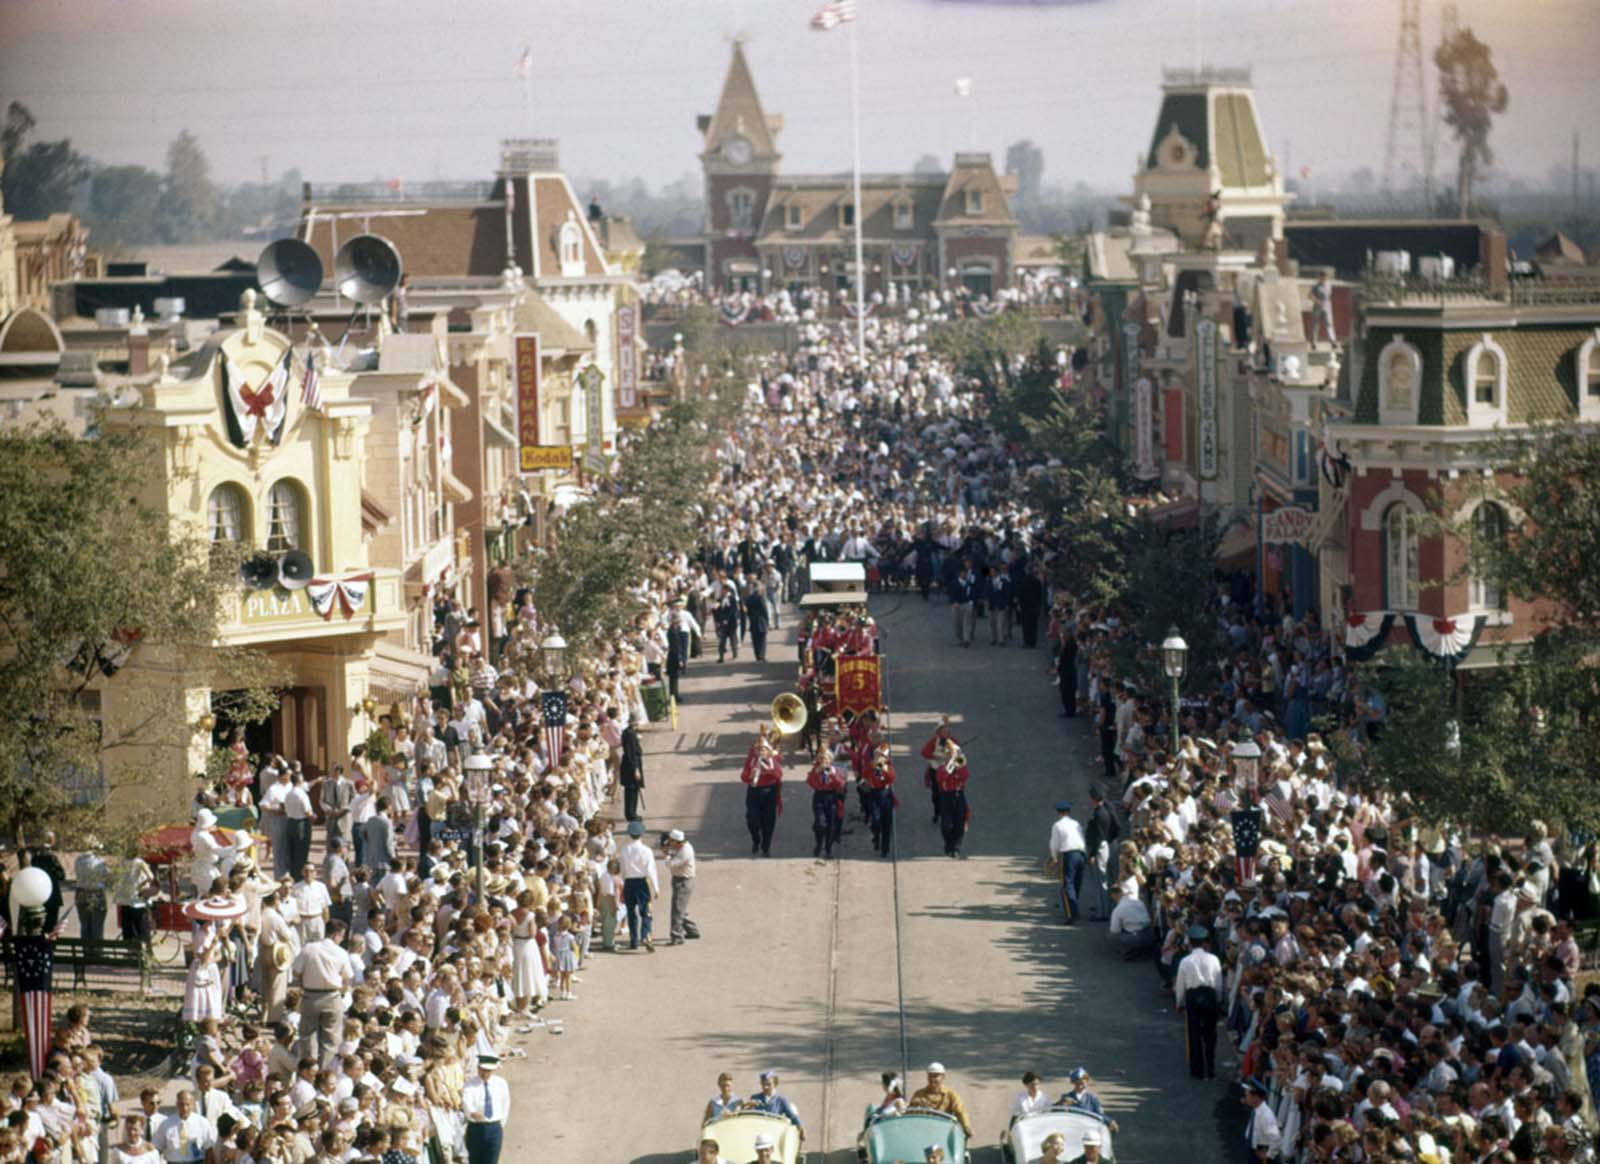 Disneyland's opening-day parade, photographed on July 17, 1955.